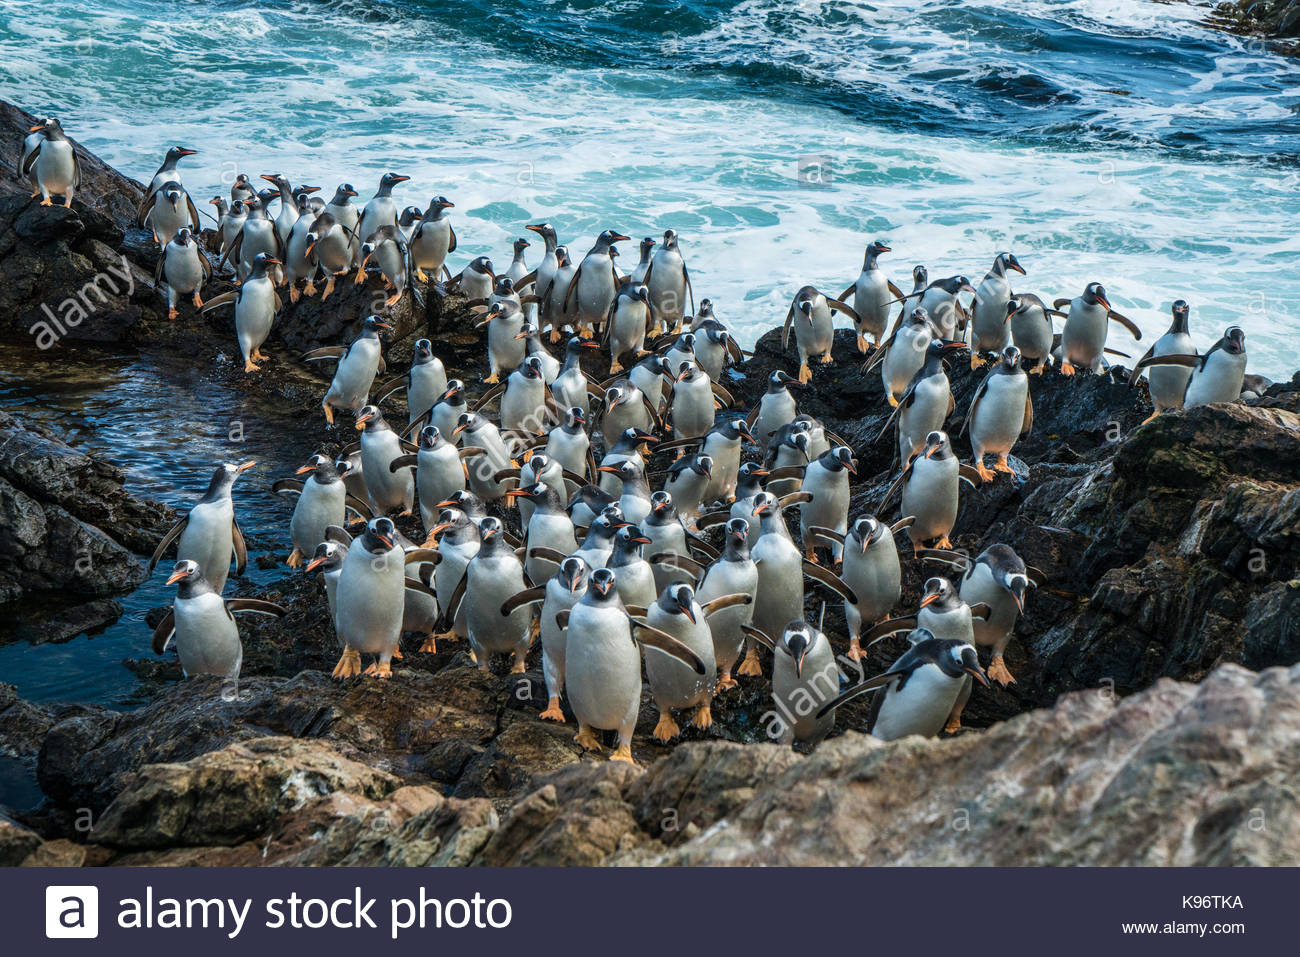 Lots of penguins waddling across a rocky outcrop. - Stock Image